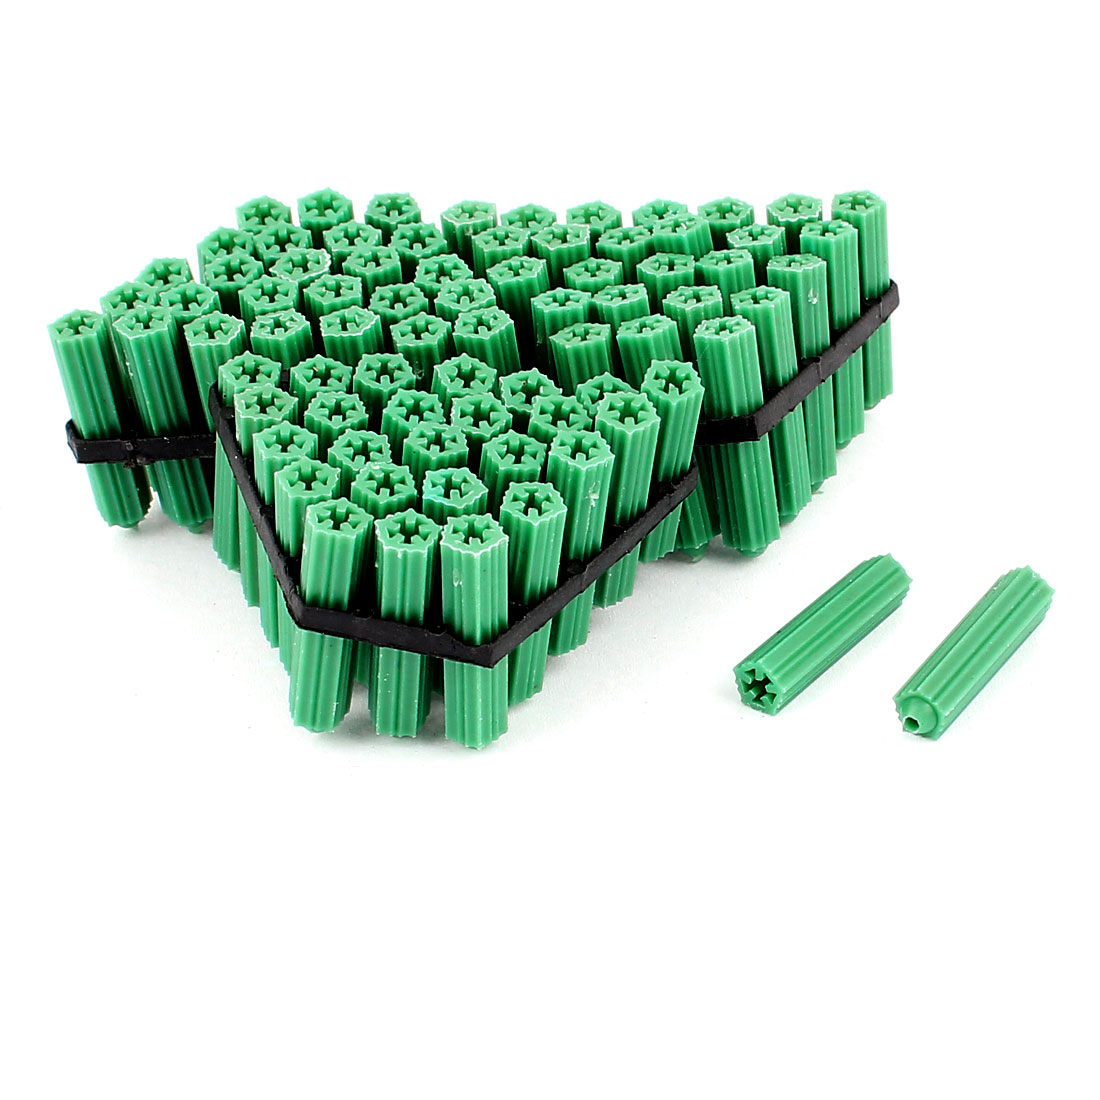 29mm x 7mm Plastic Screw Fixing Anchor Wall Stopper Fastener Green 100Pcs